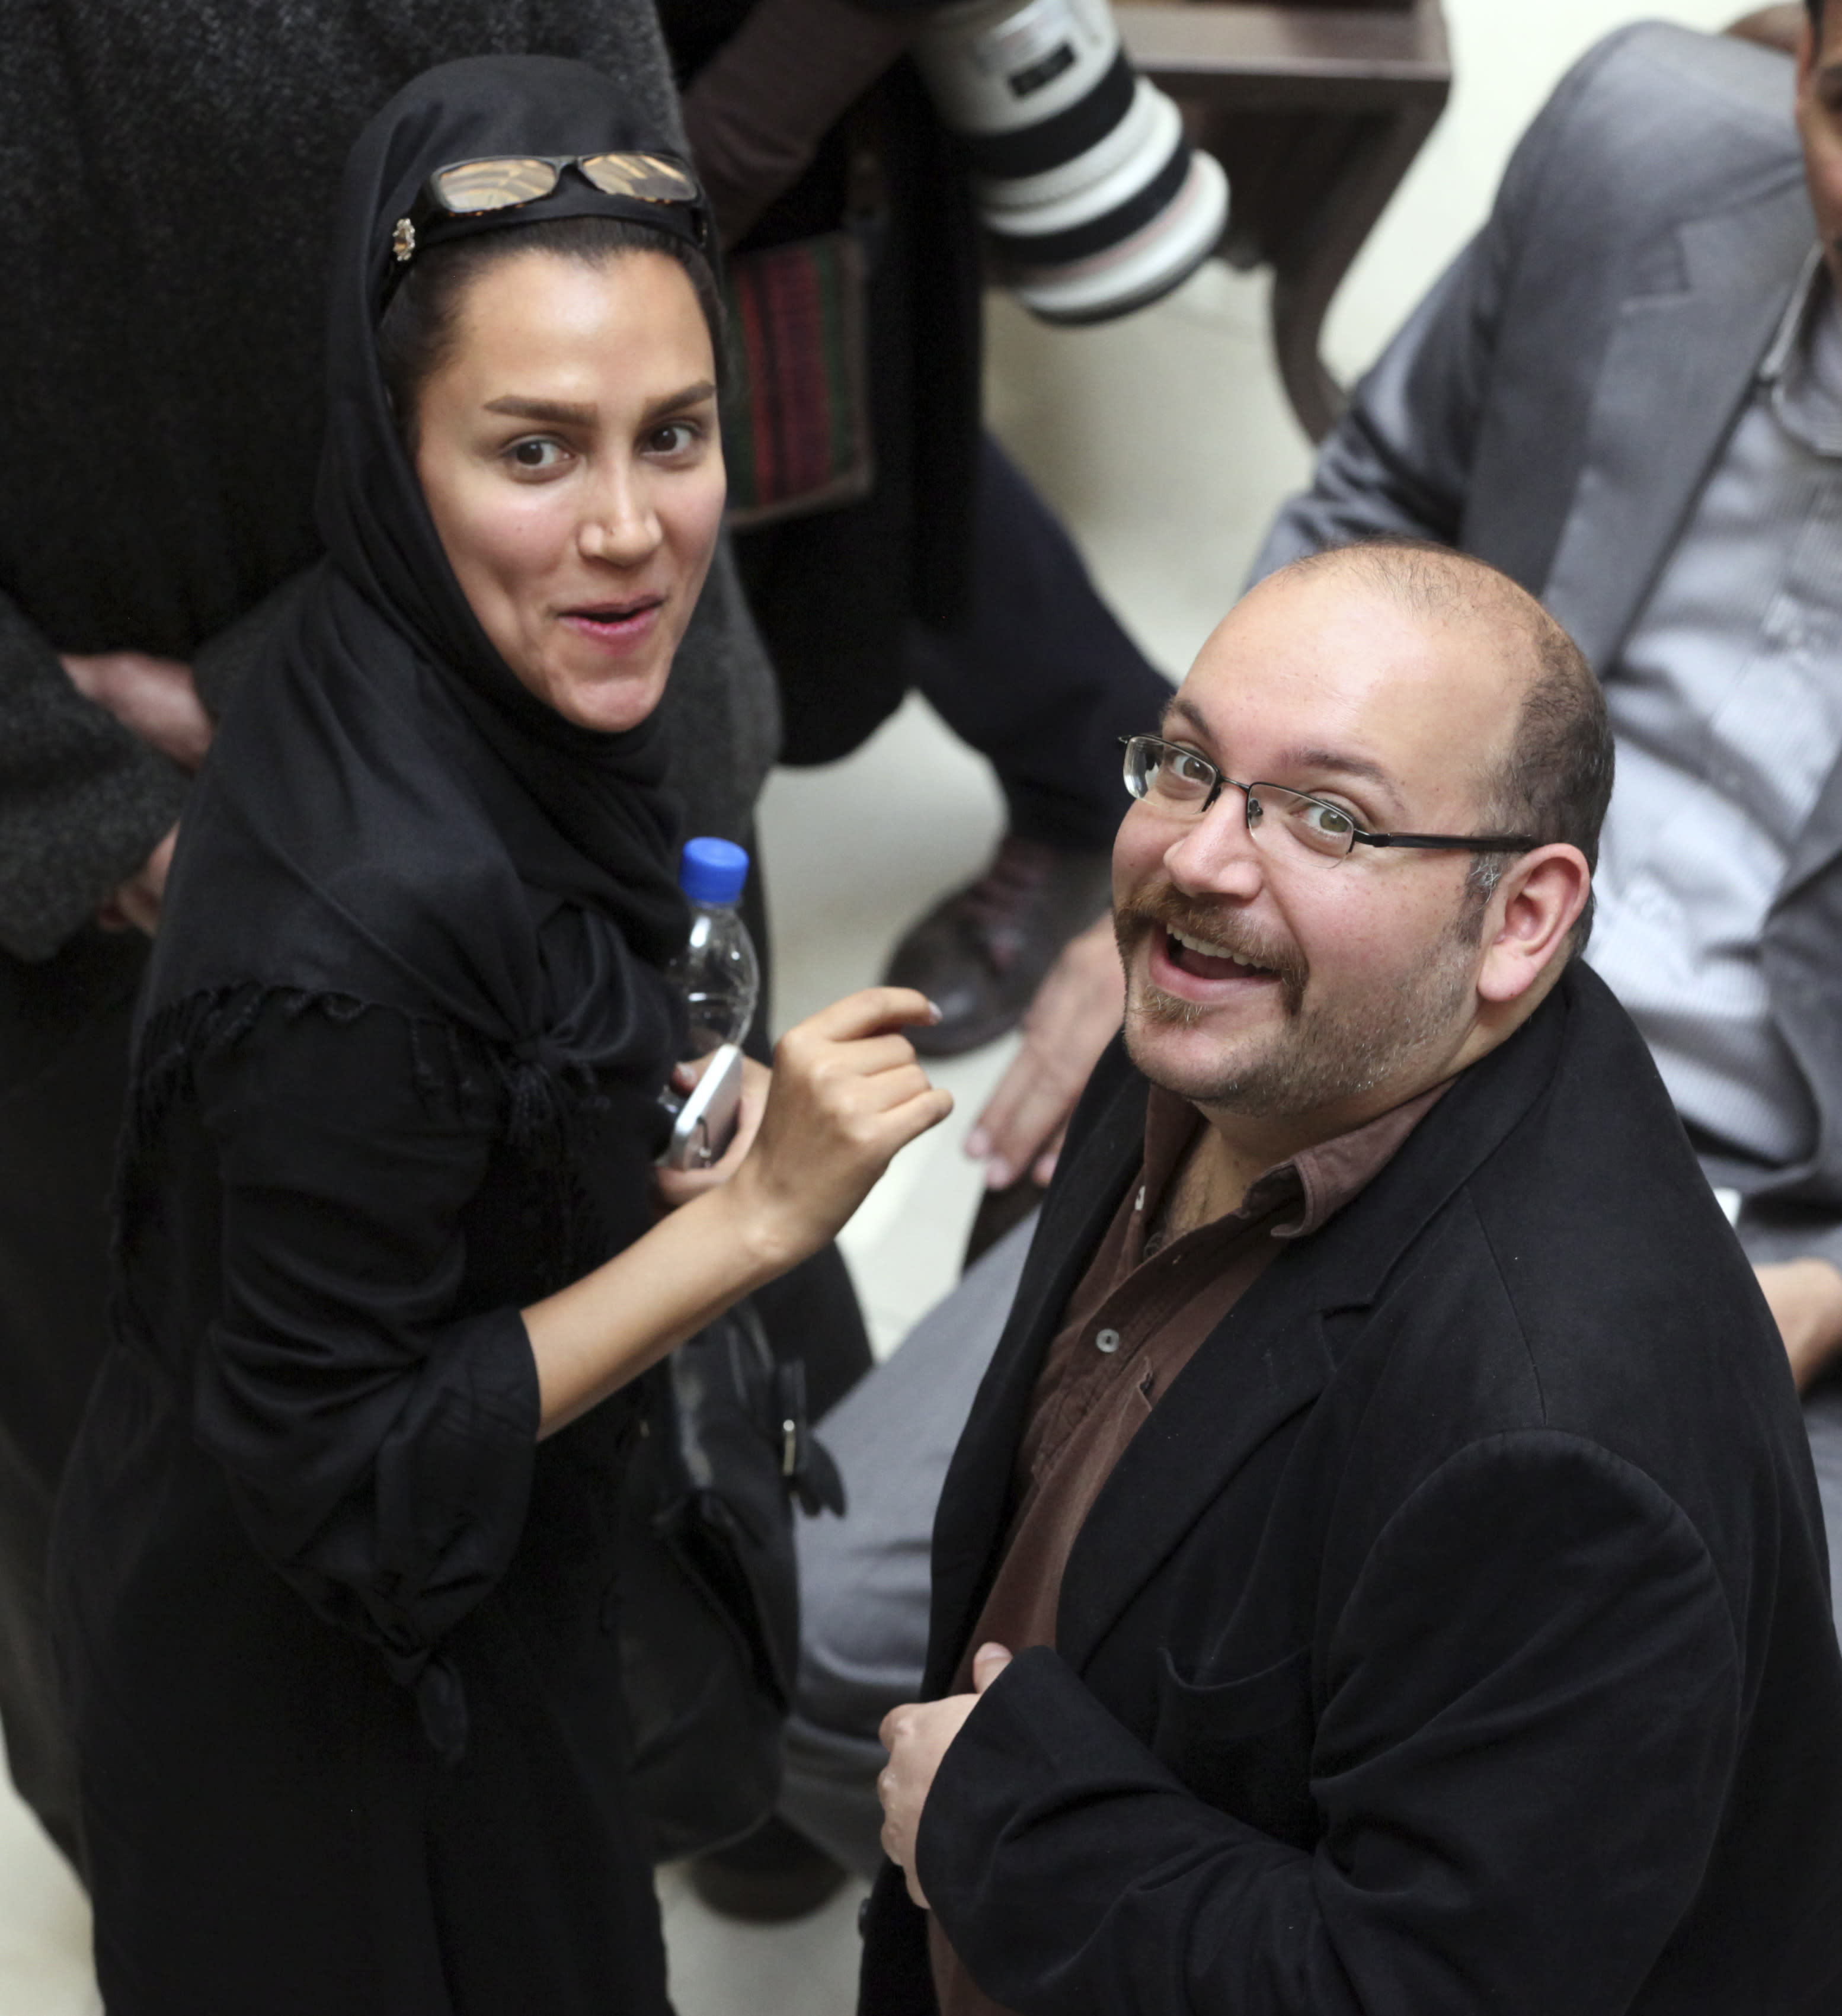 Reporter jailed in Iran gets lawyer after more than 7 months